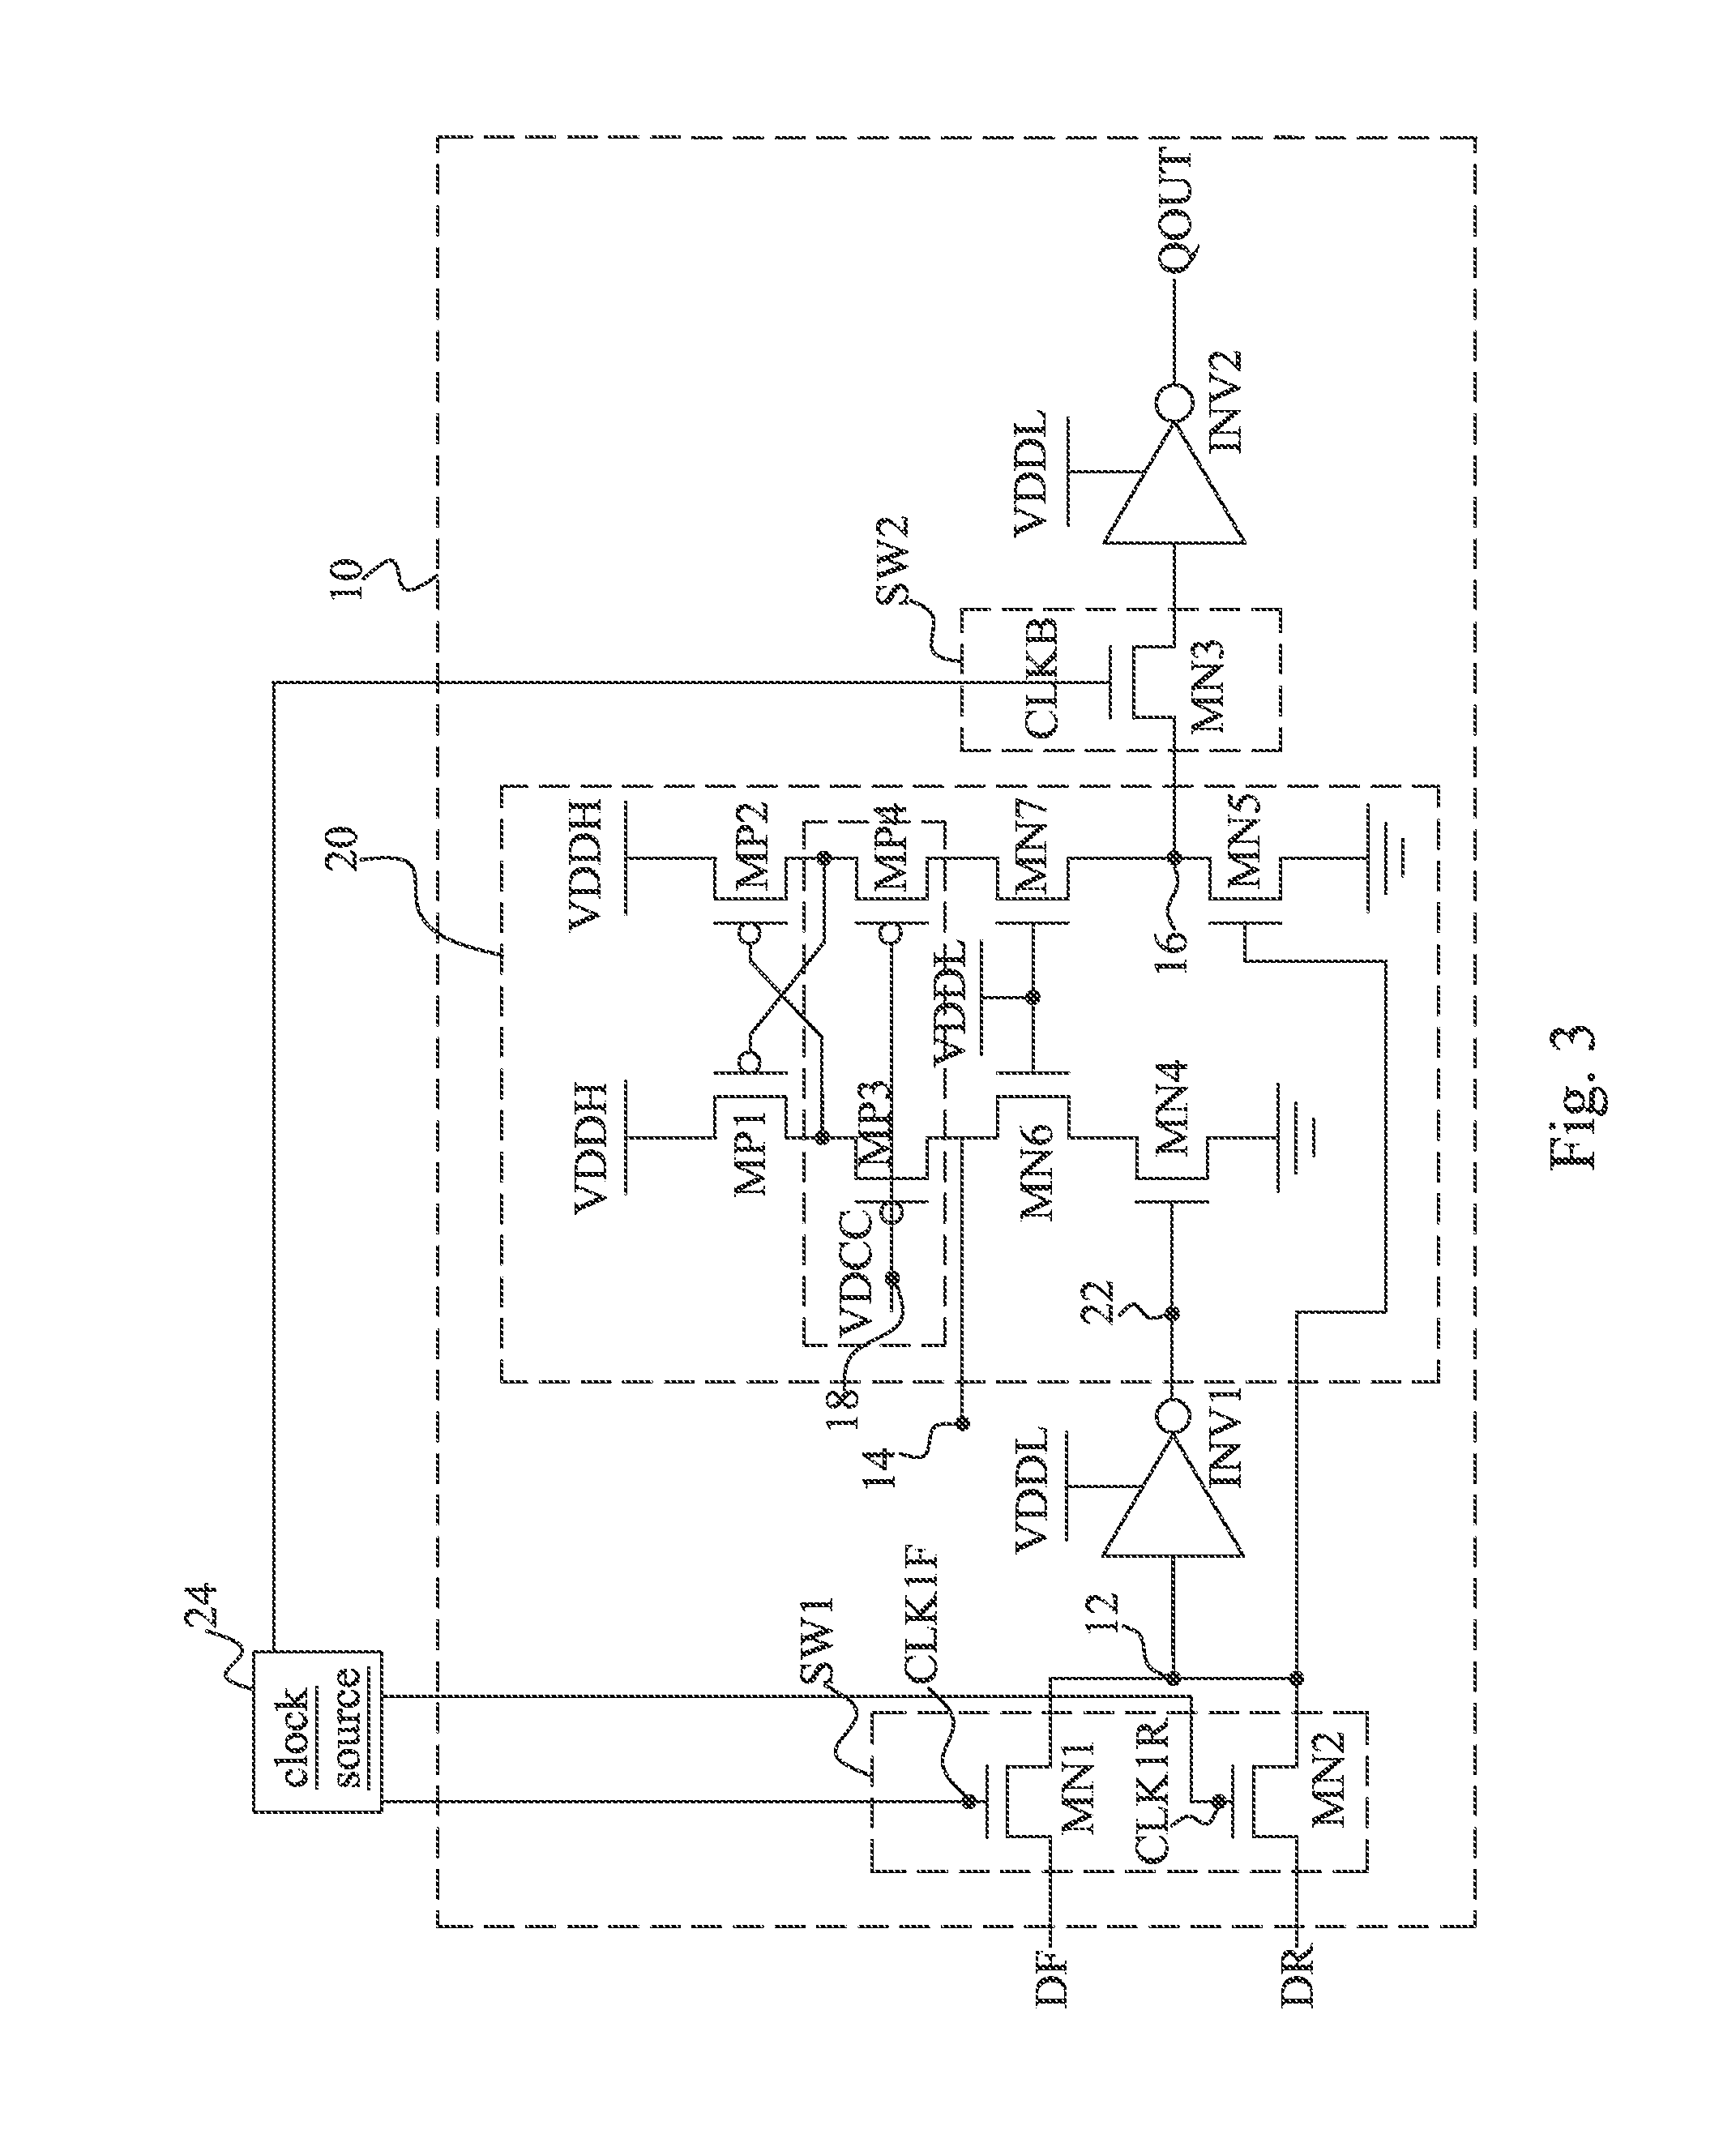 patent us20140021995 d flip flop with high swing output Latching Relay Circuit Diagram patent drawing